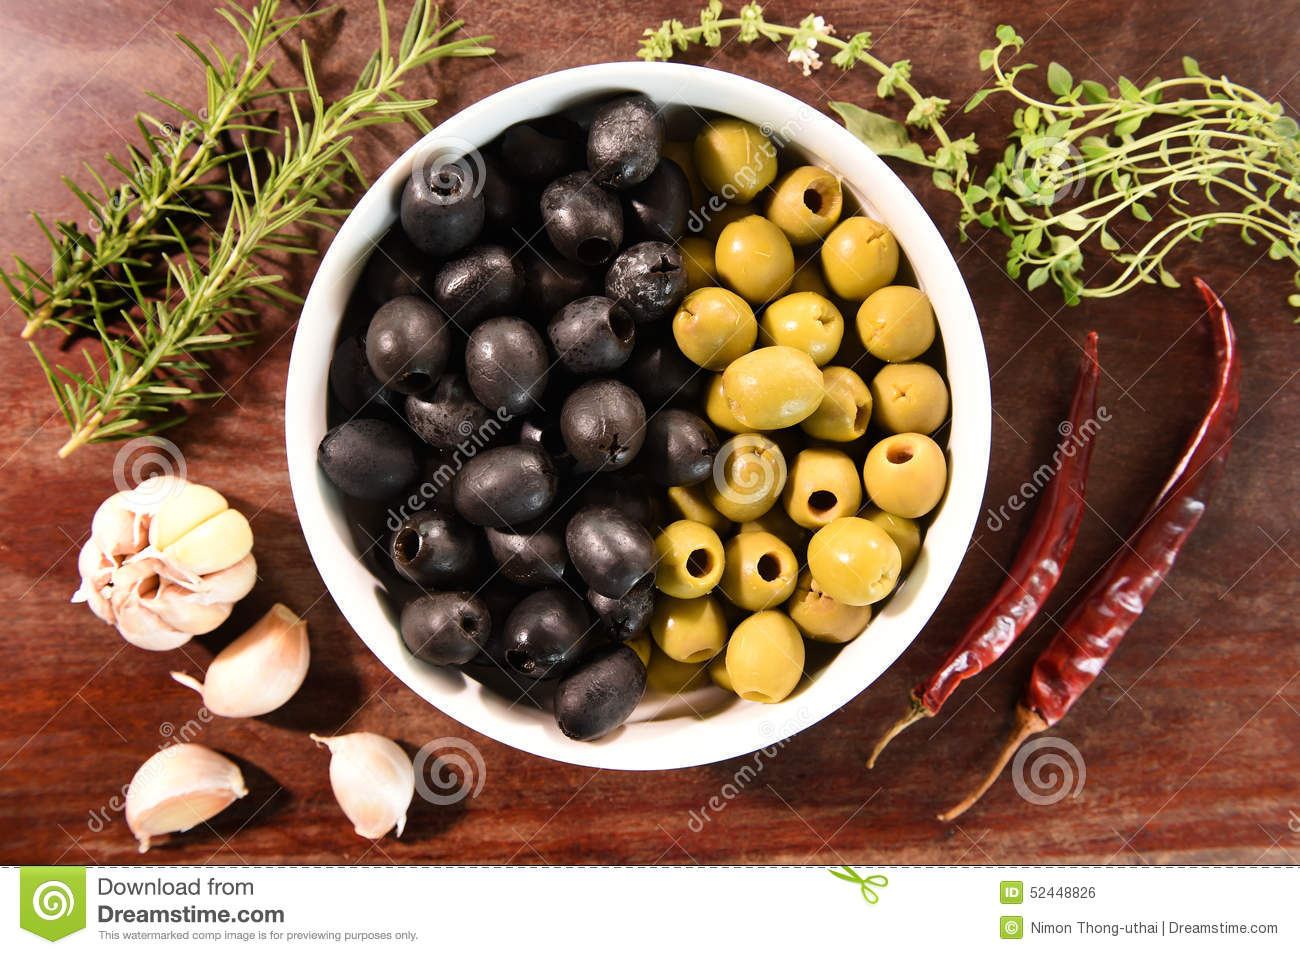 green and black olives in white bowl ingredients for pizza stock photo image 52448826. Black Bedroom Furniture Sets. Home Design Ideas